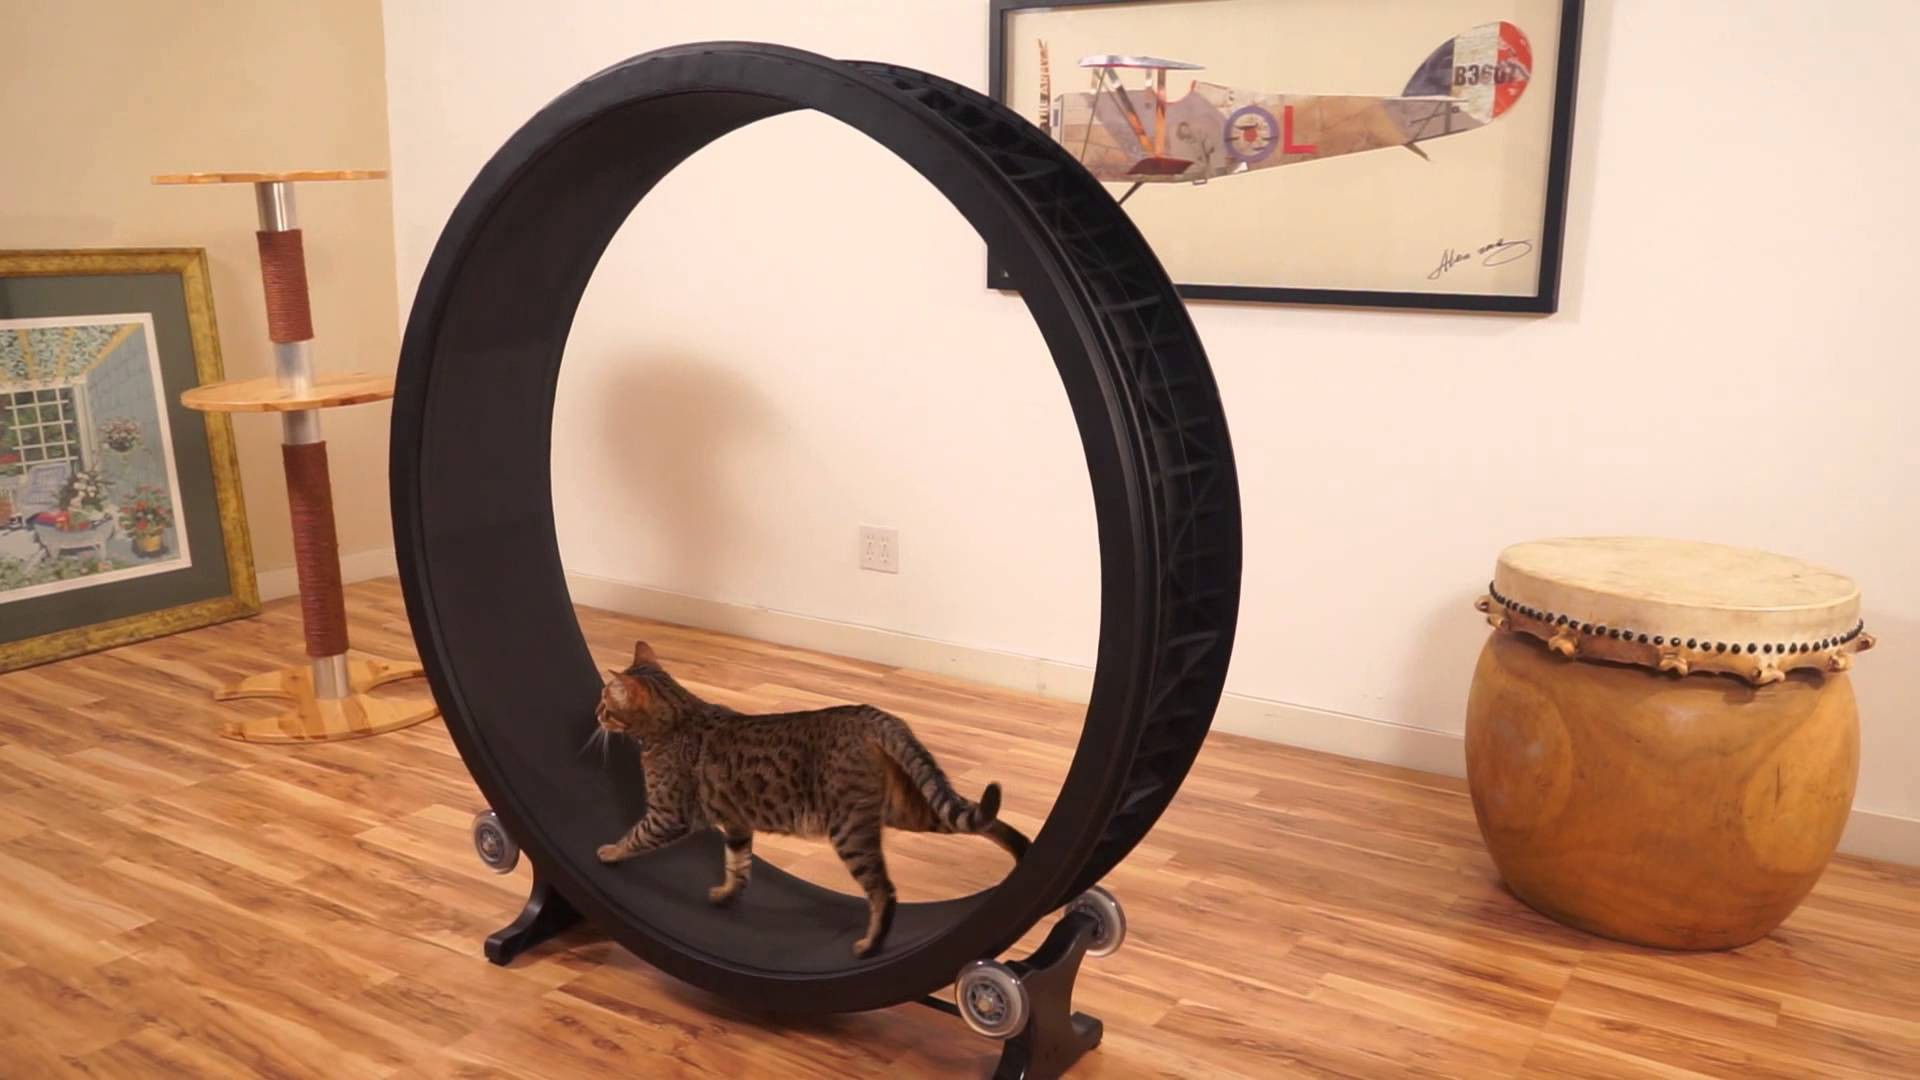 One Fast Cat ($344 911). Kickstarter, деньги, юмор